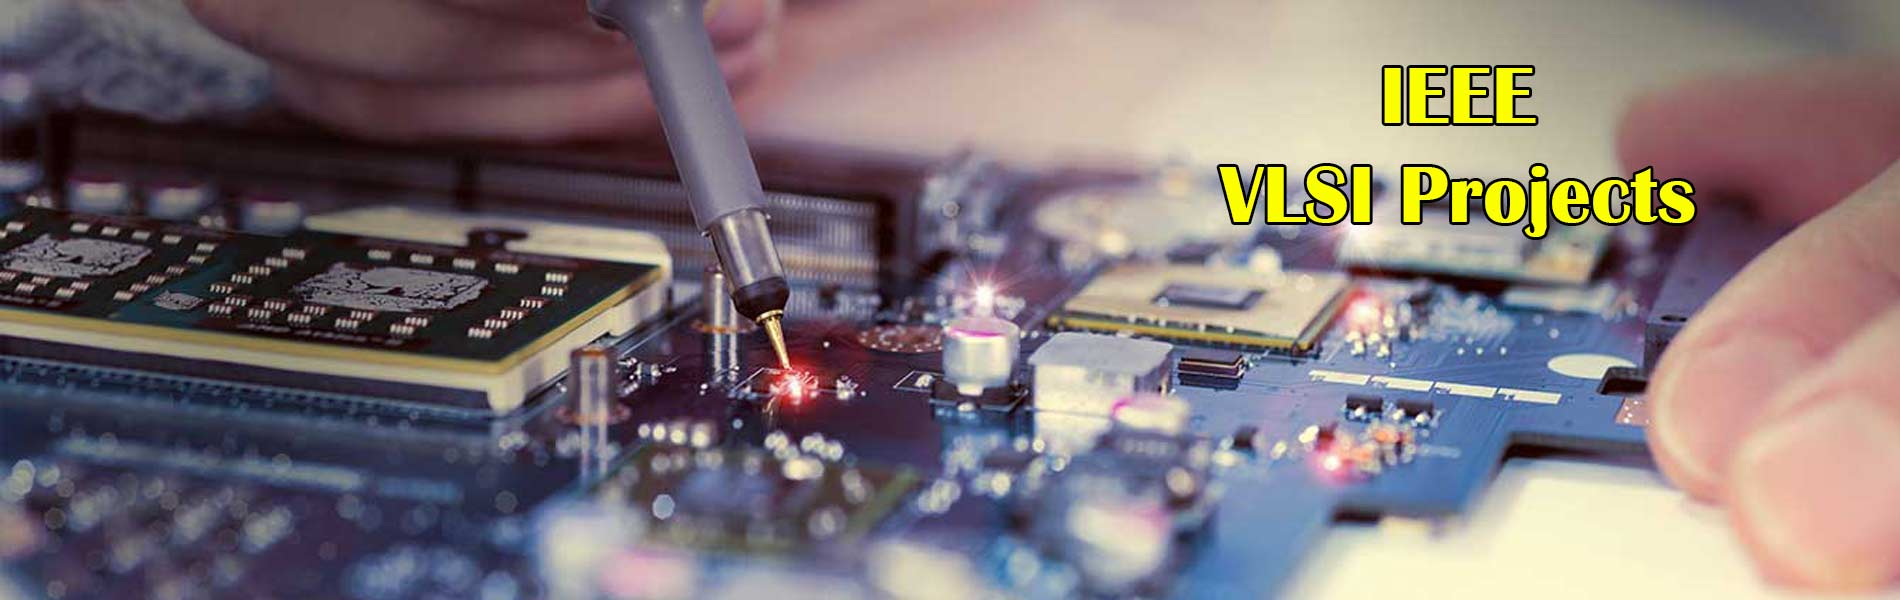 ieee-vlsi-finalyear-project-in-chennai